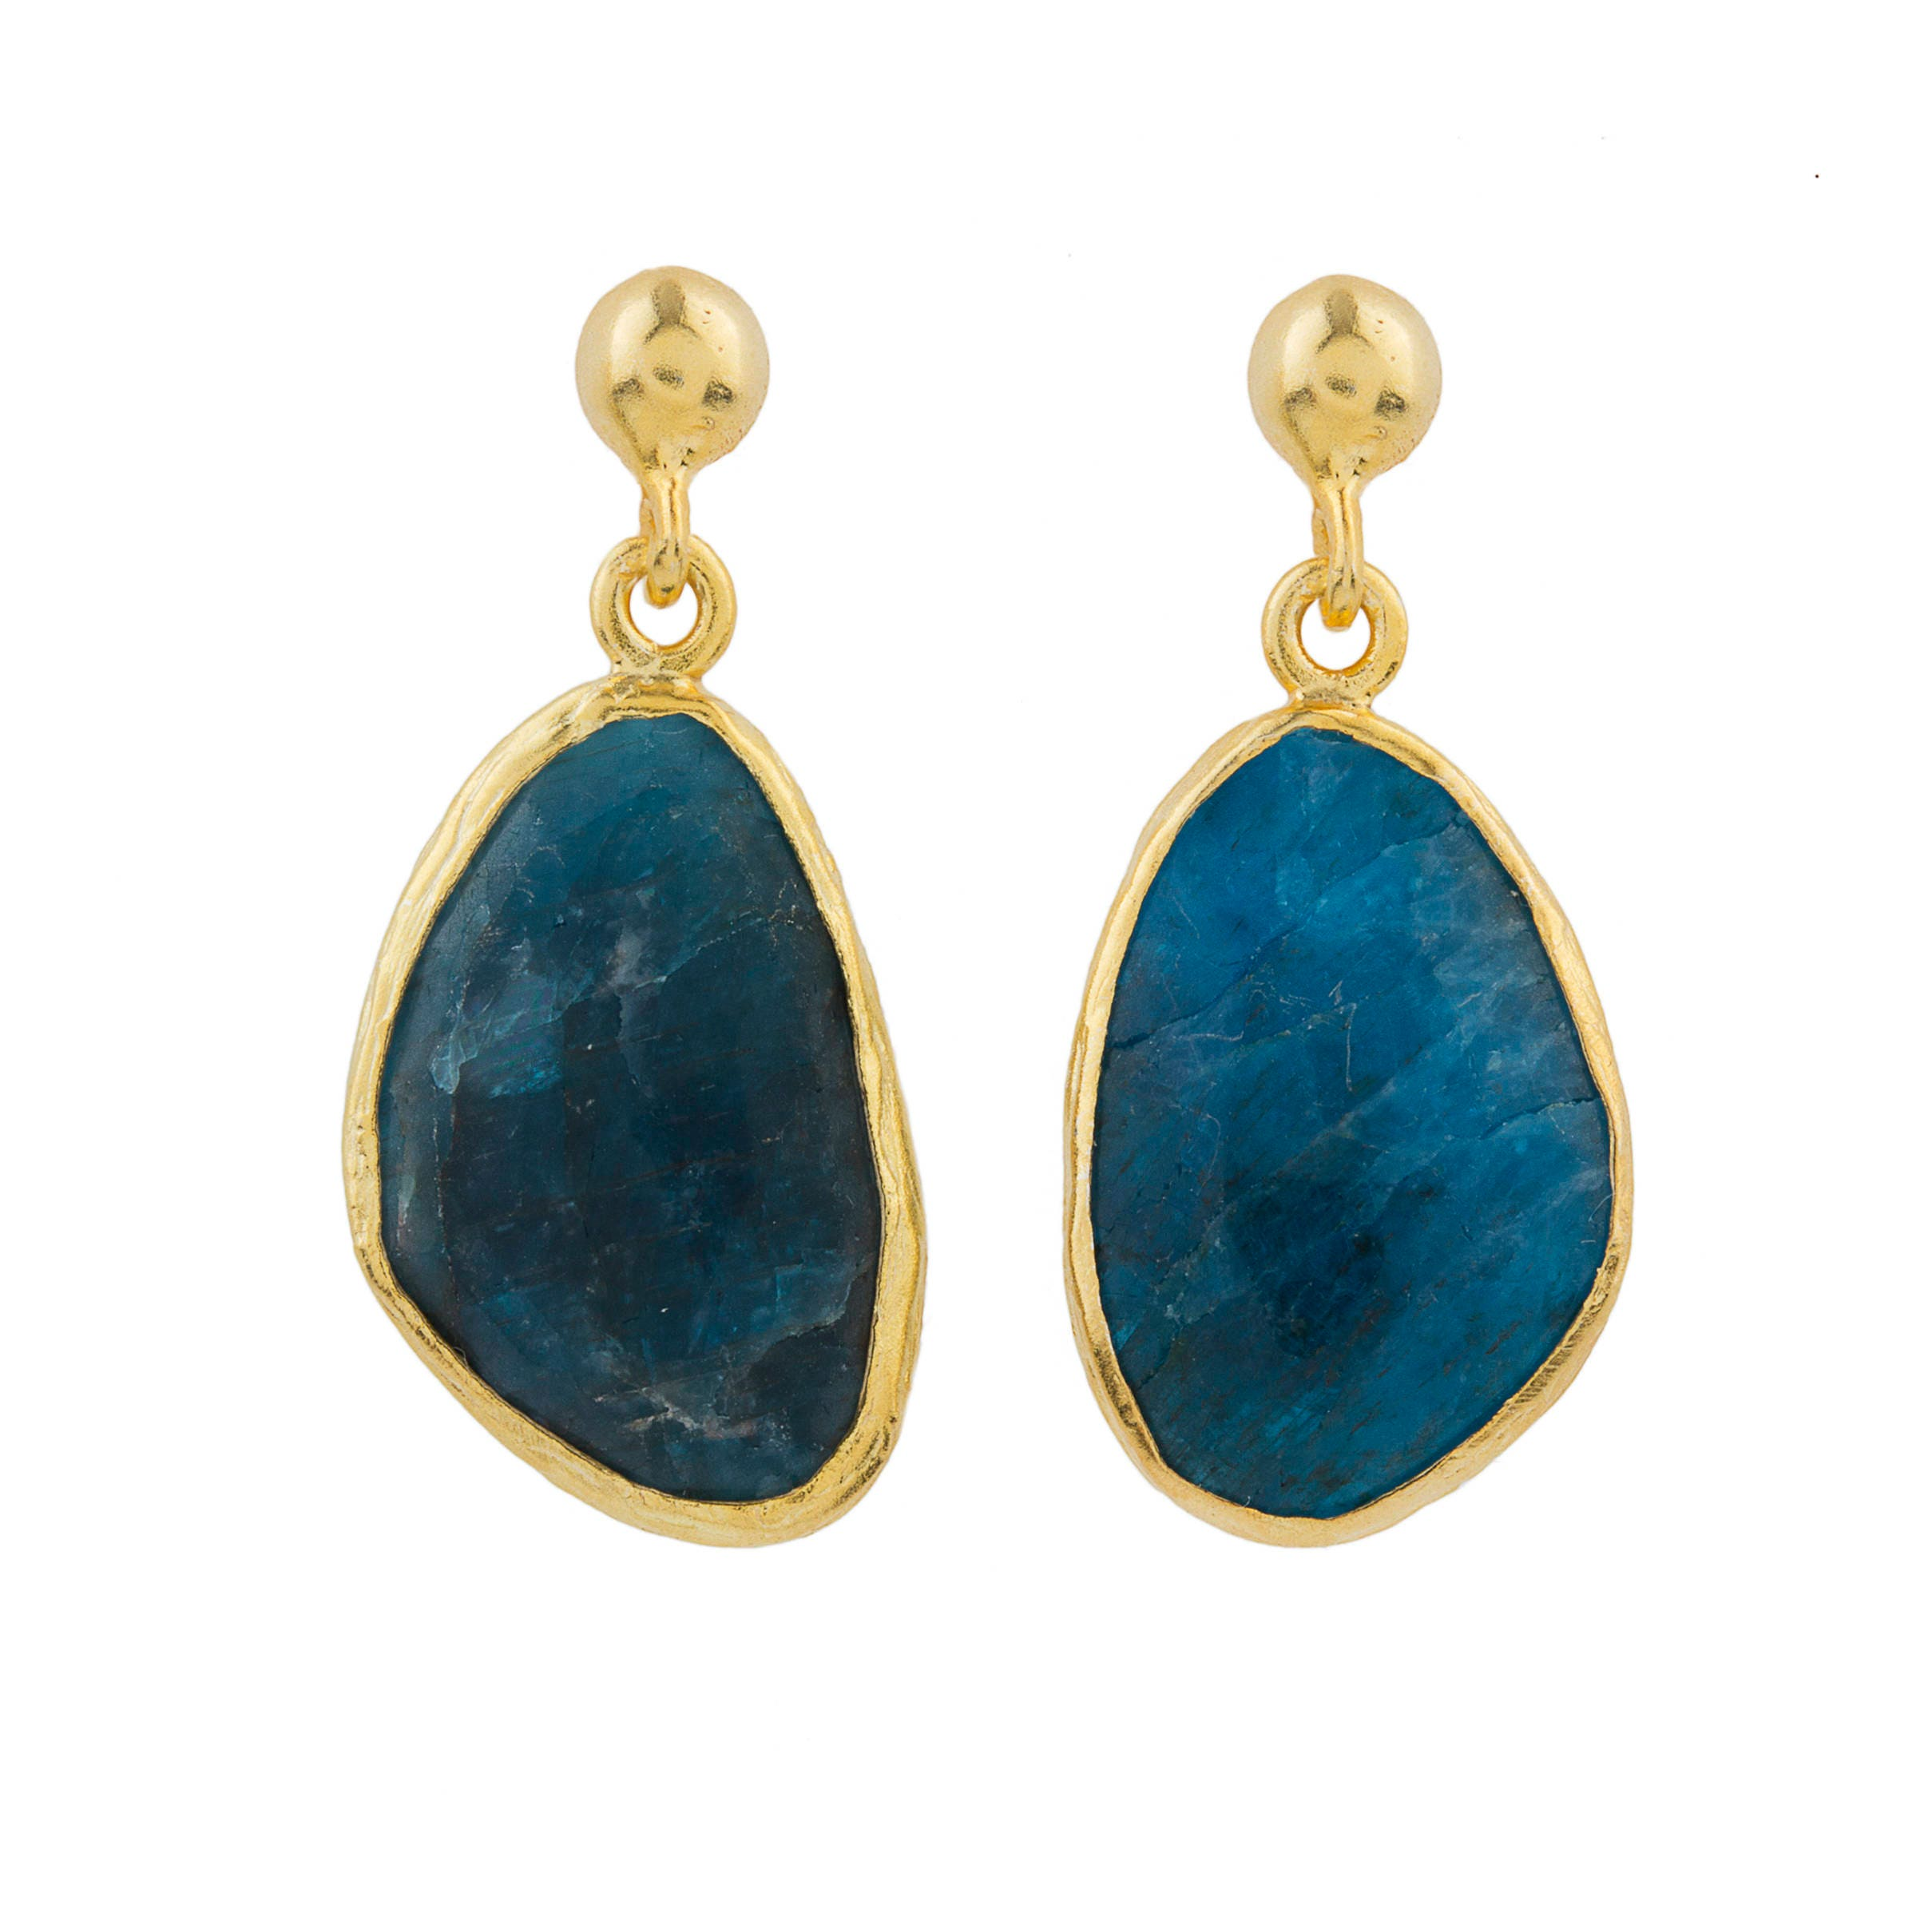 colectiva studs products apatite by neonapatite neon raw pinchgoods earrings